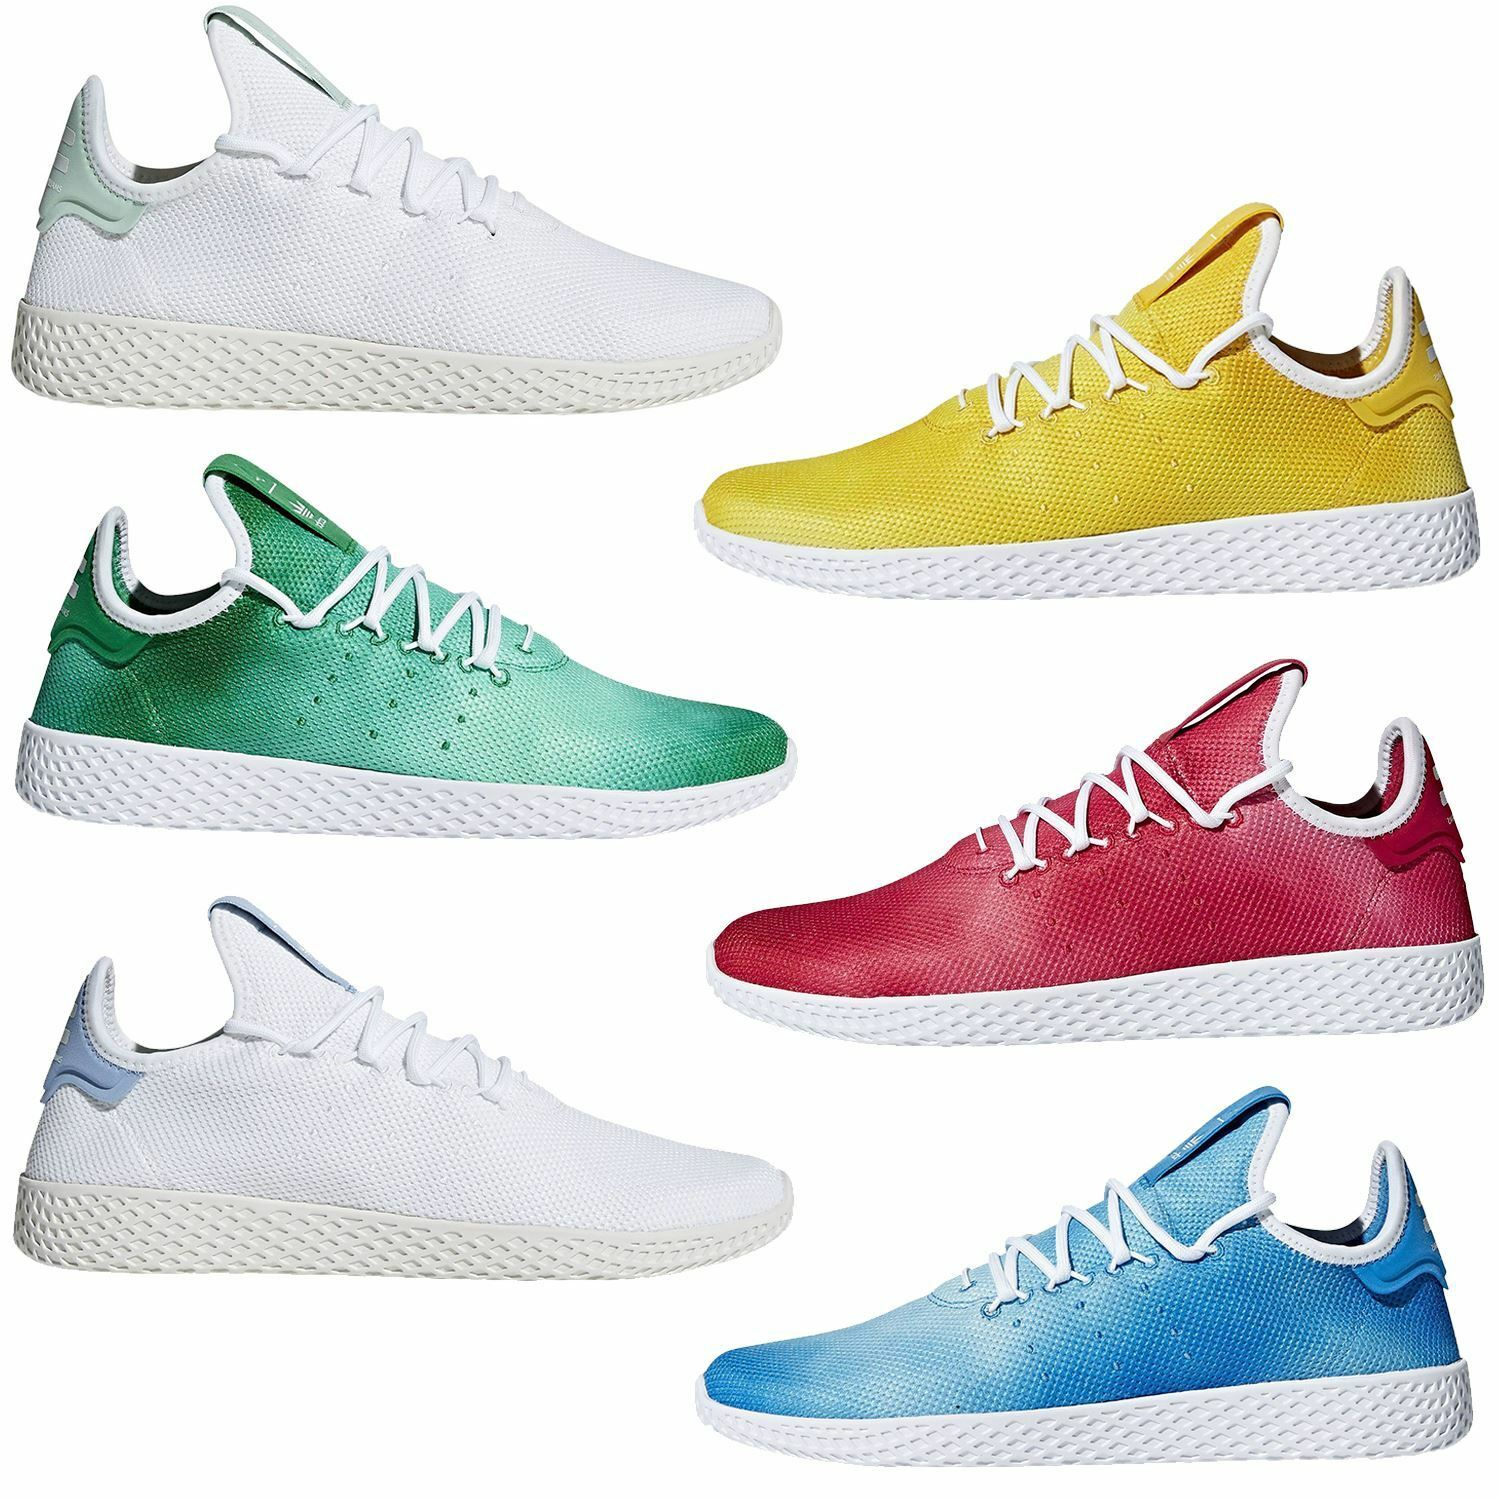 nike pullover Billig snipes, Damen nike roshe one hi drucken